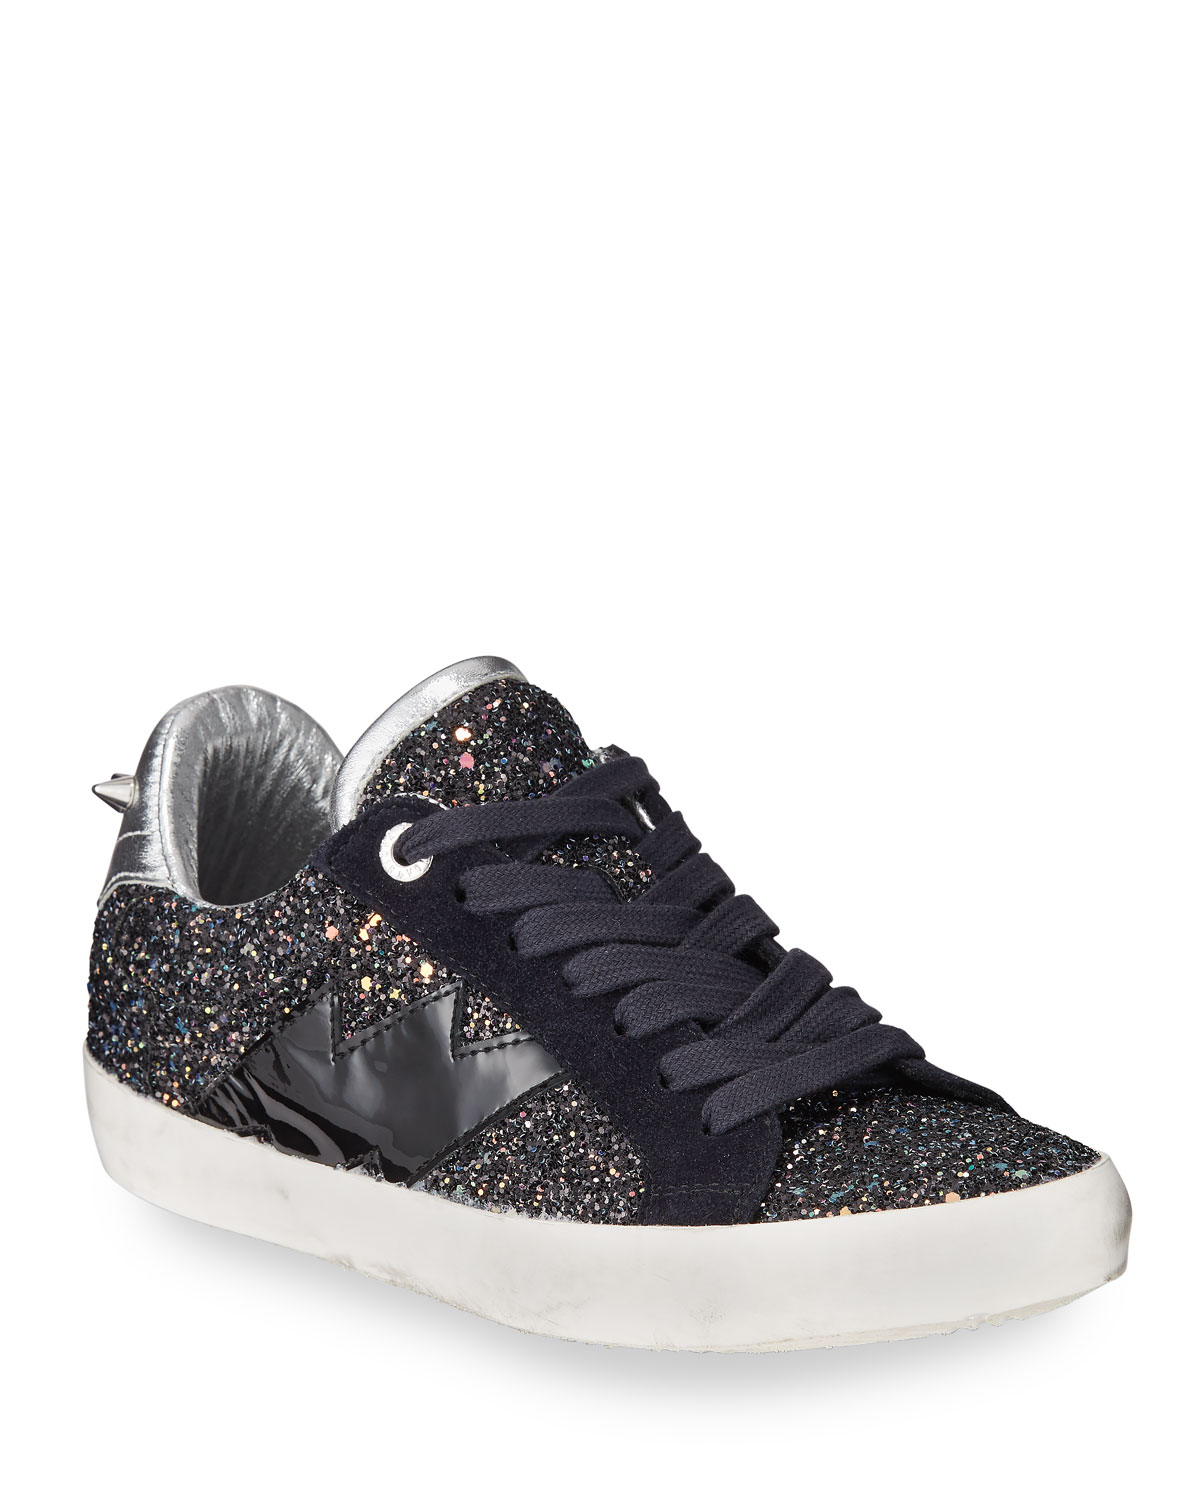 Zadig & Voltaire Used Glitter Sneakers